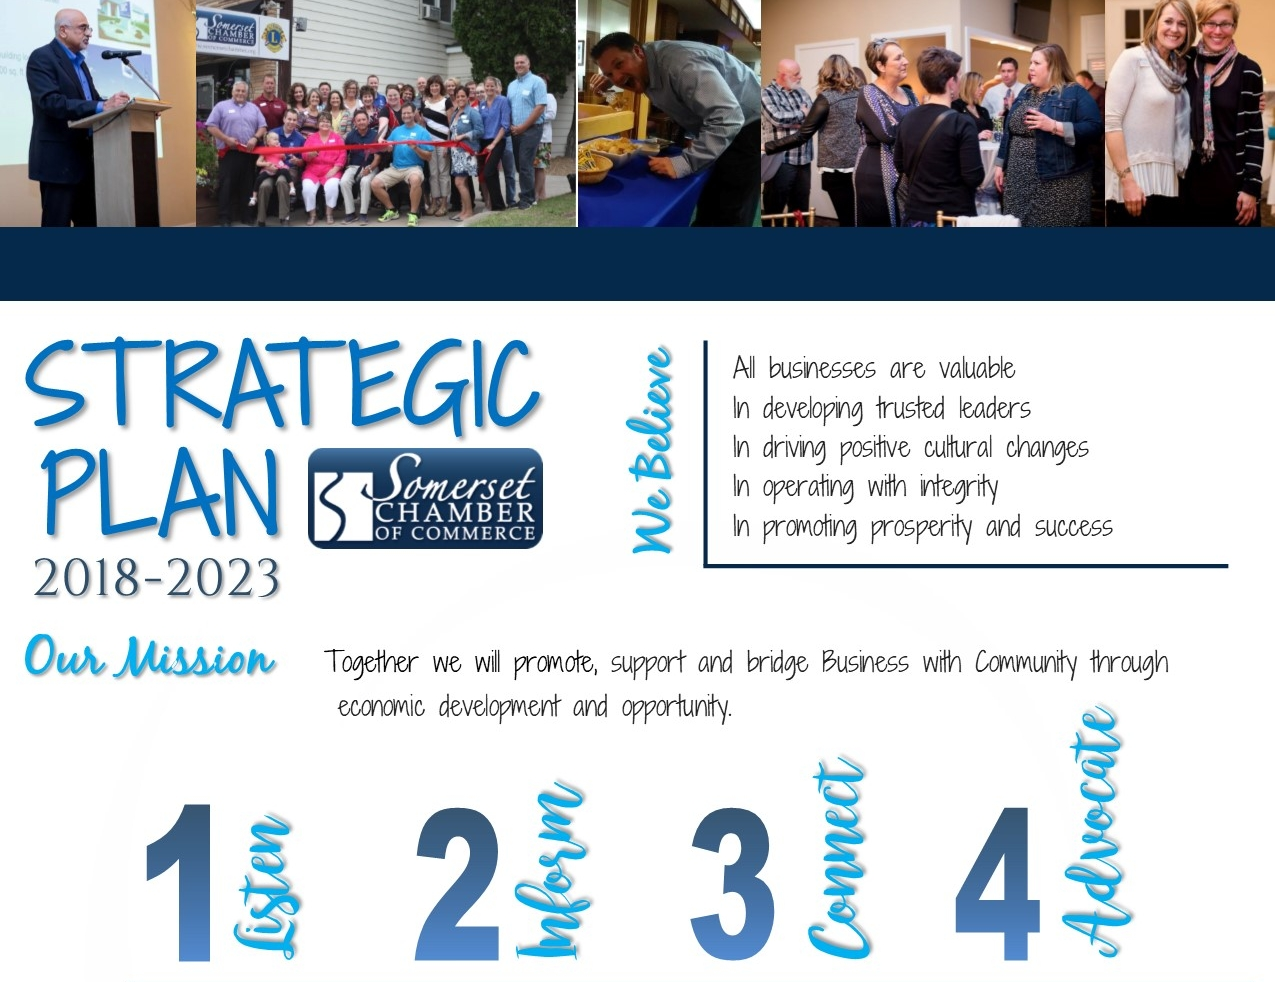 Chamber of Commerce Announces New Strategic Plan - CLICK HERE to see the full Strategic Plan